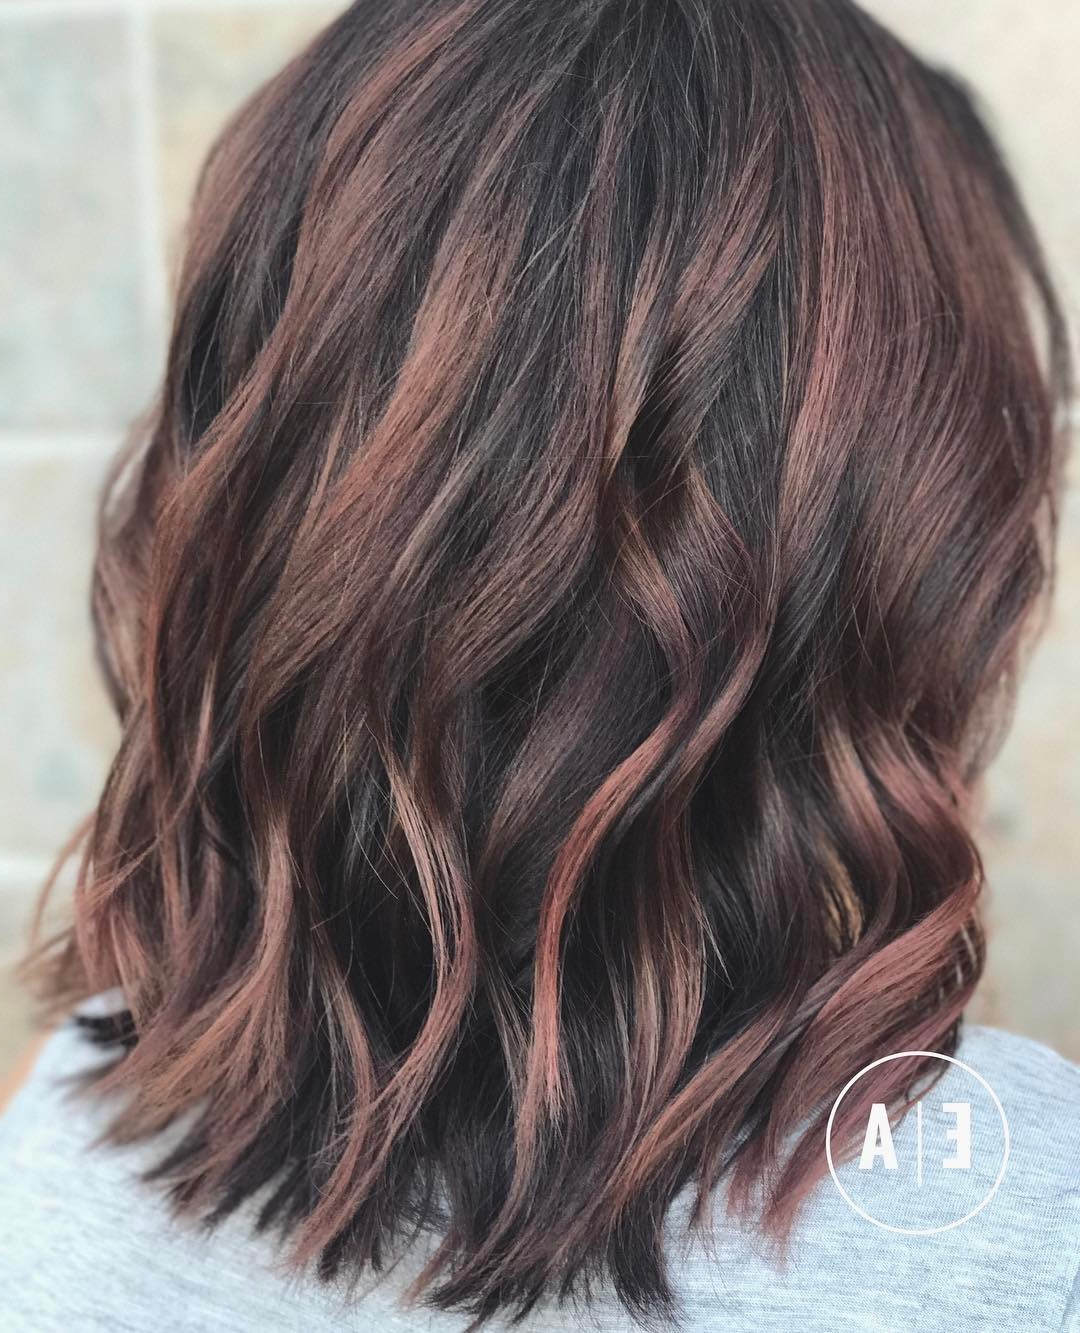 10 Balayage Hair Styles For Medium Length Hair 2019 – Freshen Up Pertaining To Popular Medium Haircuts With Red Color (View 9 of 20)